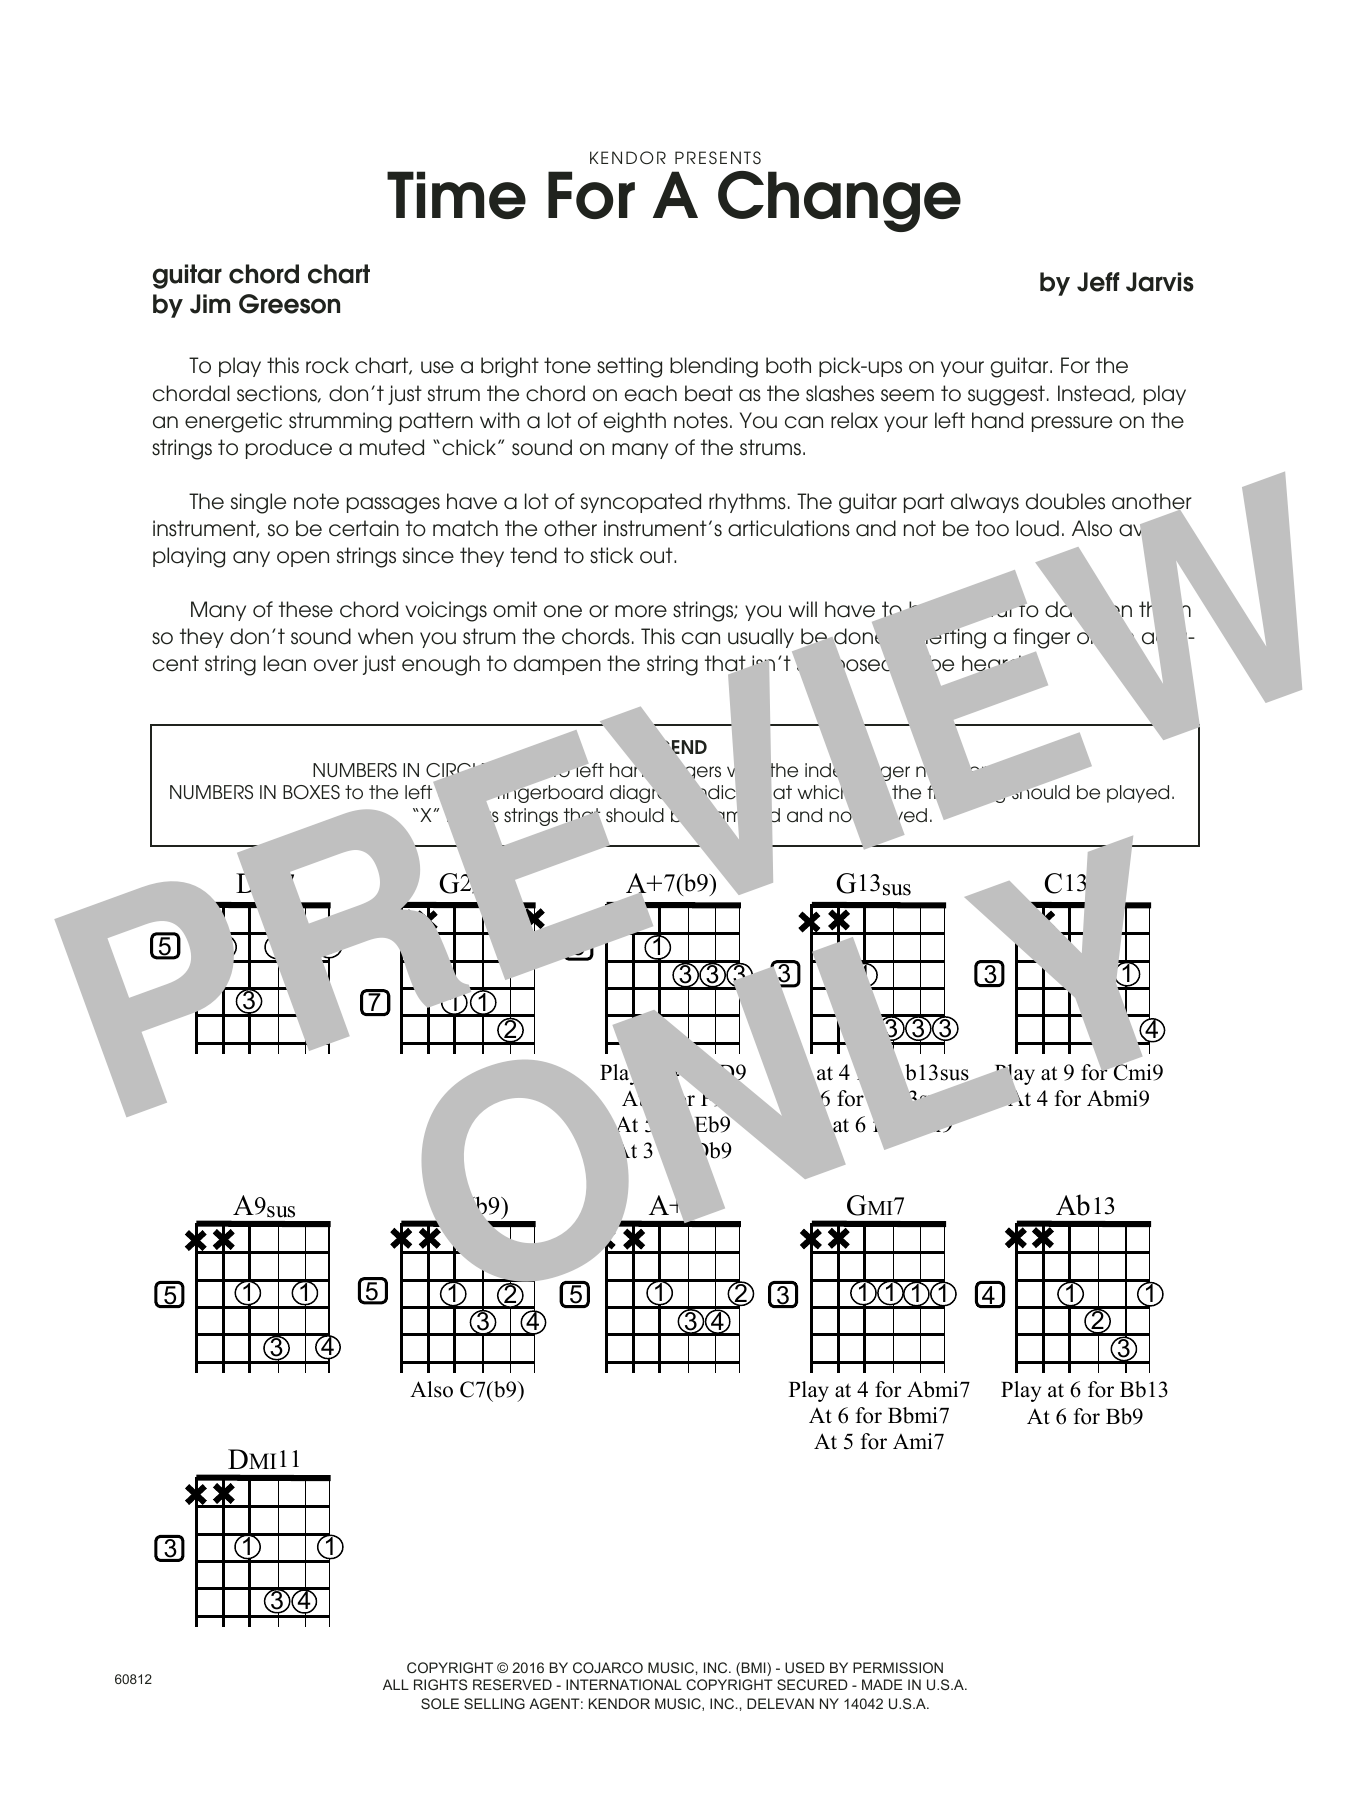 Time For A Change - Guitar Chord Chart Sheet Music